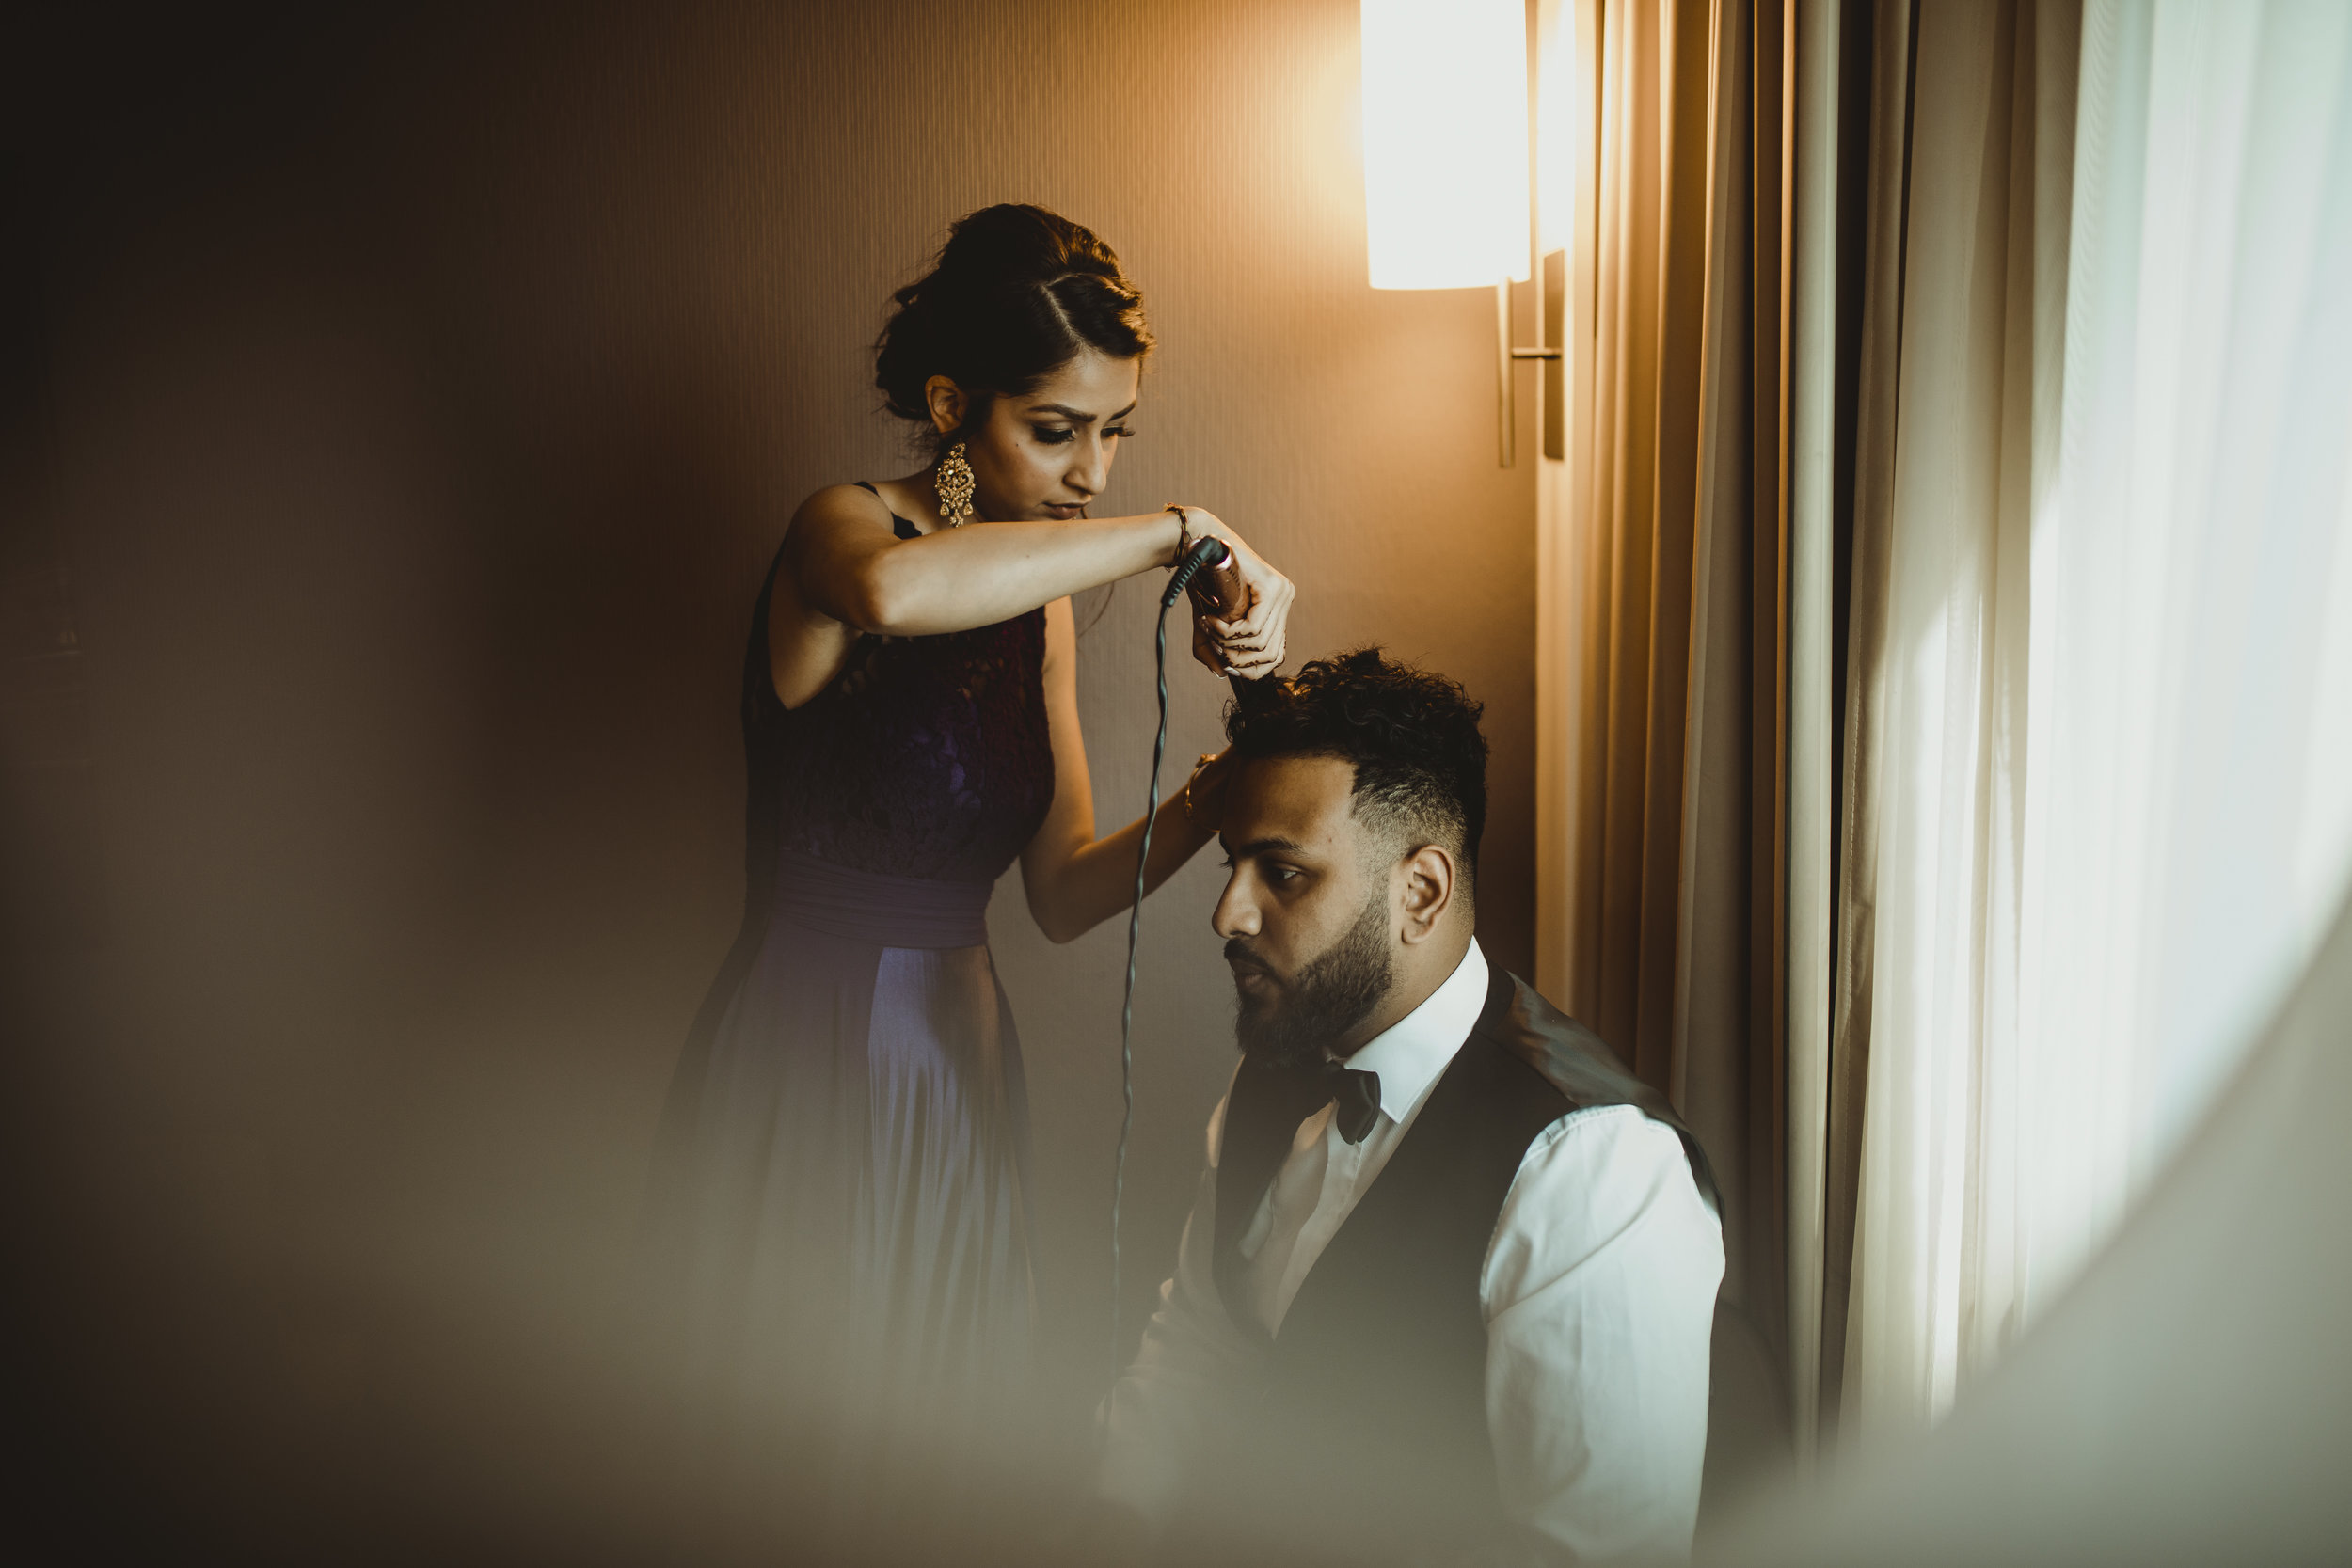 N&J_MILTON_KEYNES_WEDDING_LONDON_PHOTOGRAPHER_ASIAN_WEDDING-904.JPG